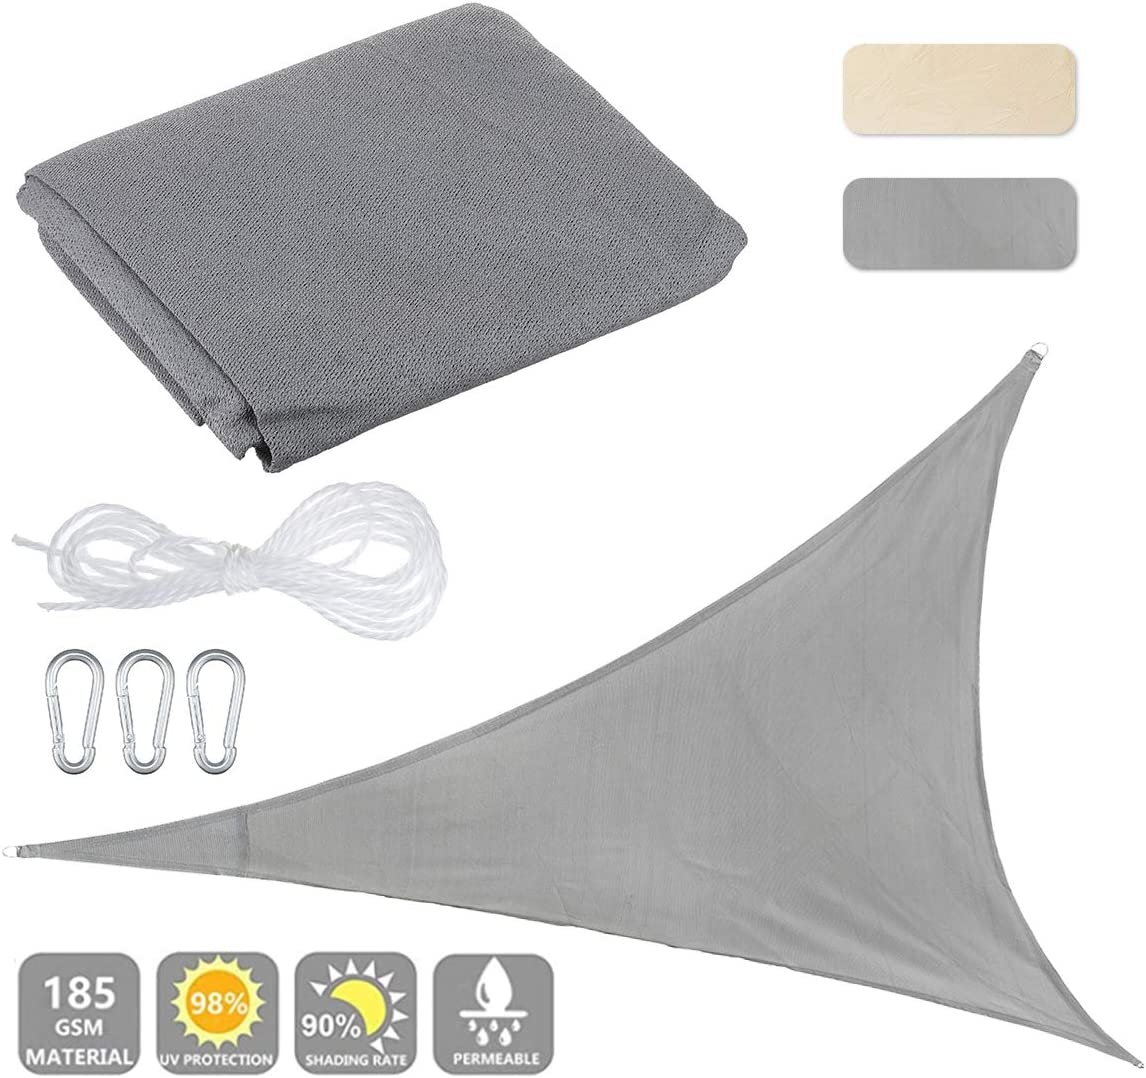 Slimerence 12 x12 x12 Triangle Sun Shade Sail, Sand UV Block Cover Shelter for Outdoor Patio Lawn Garden Backyard Grey